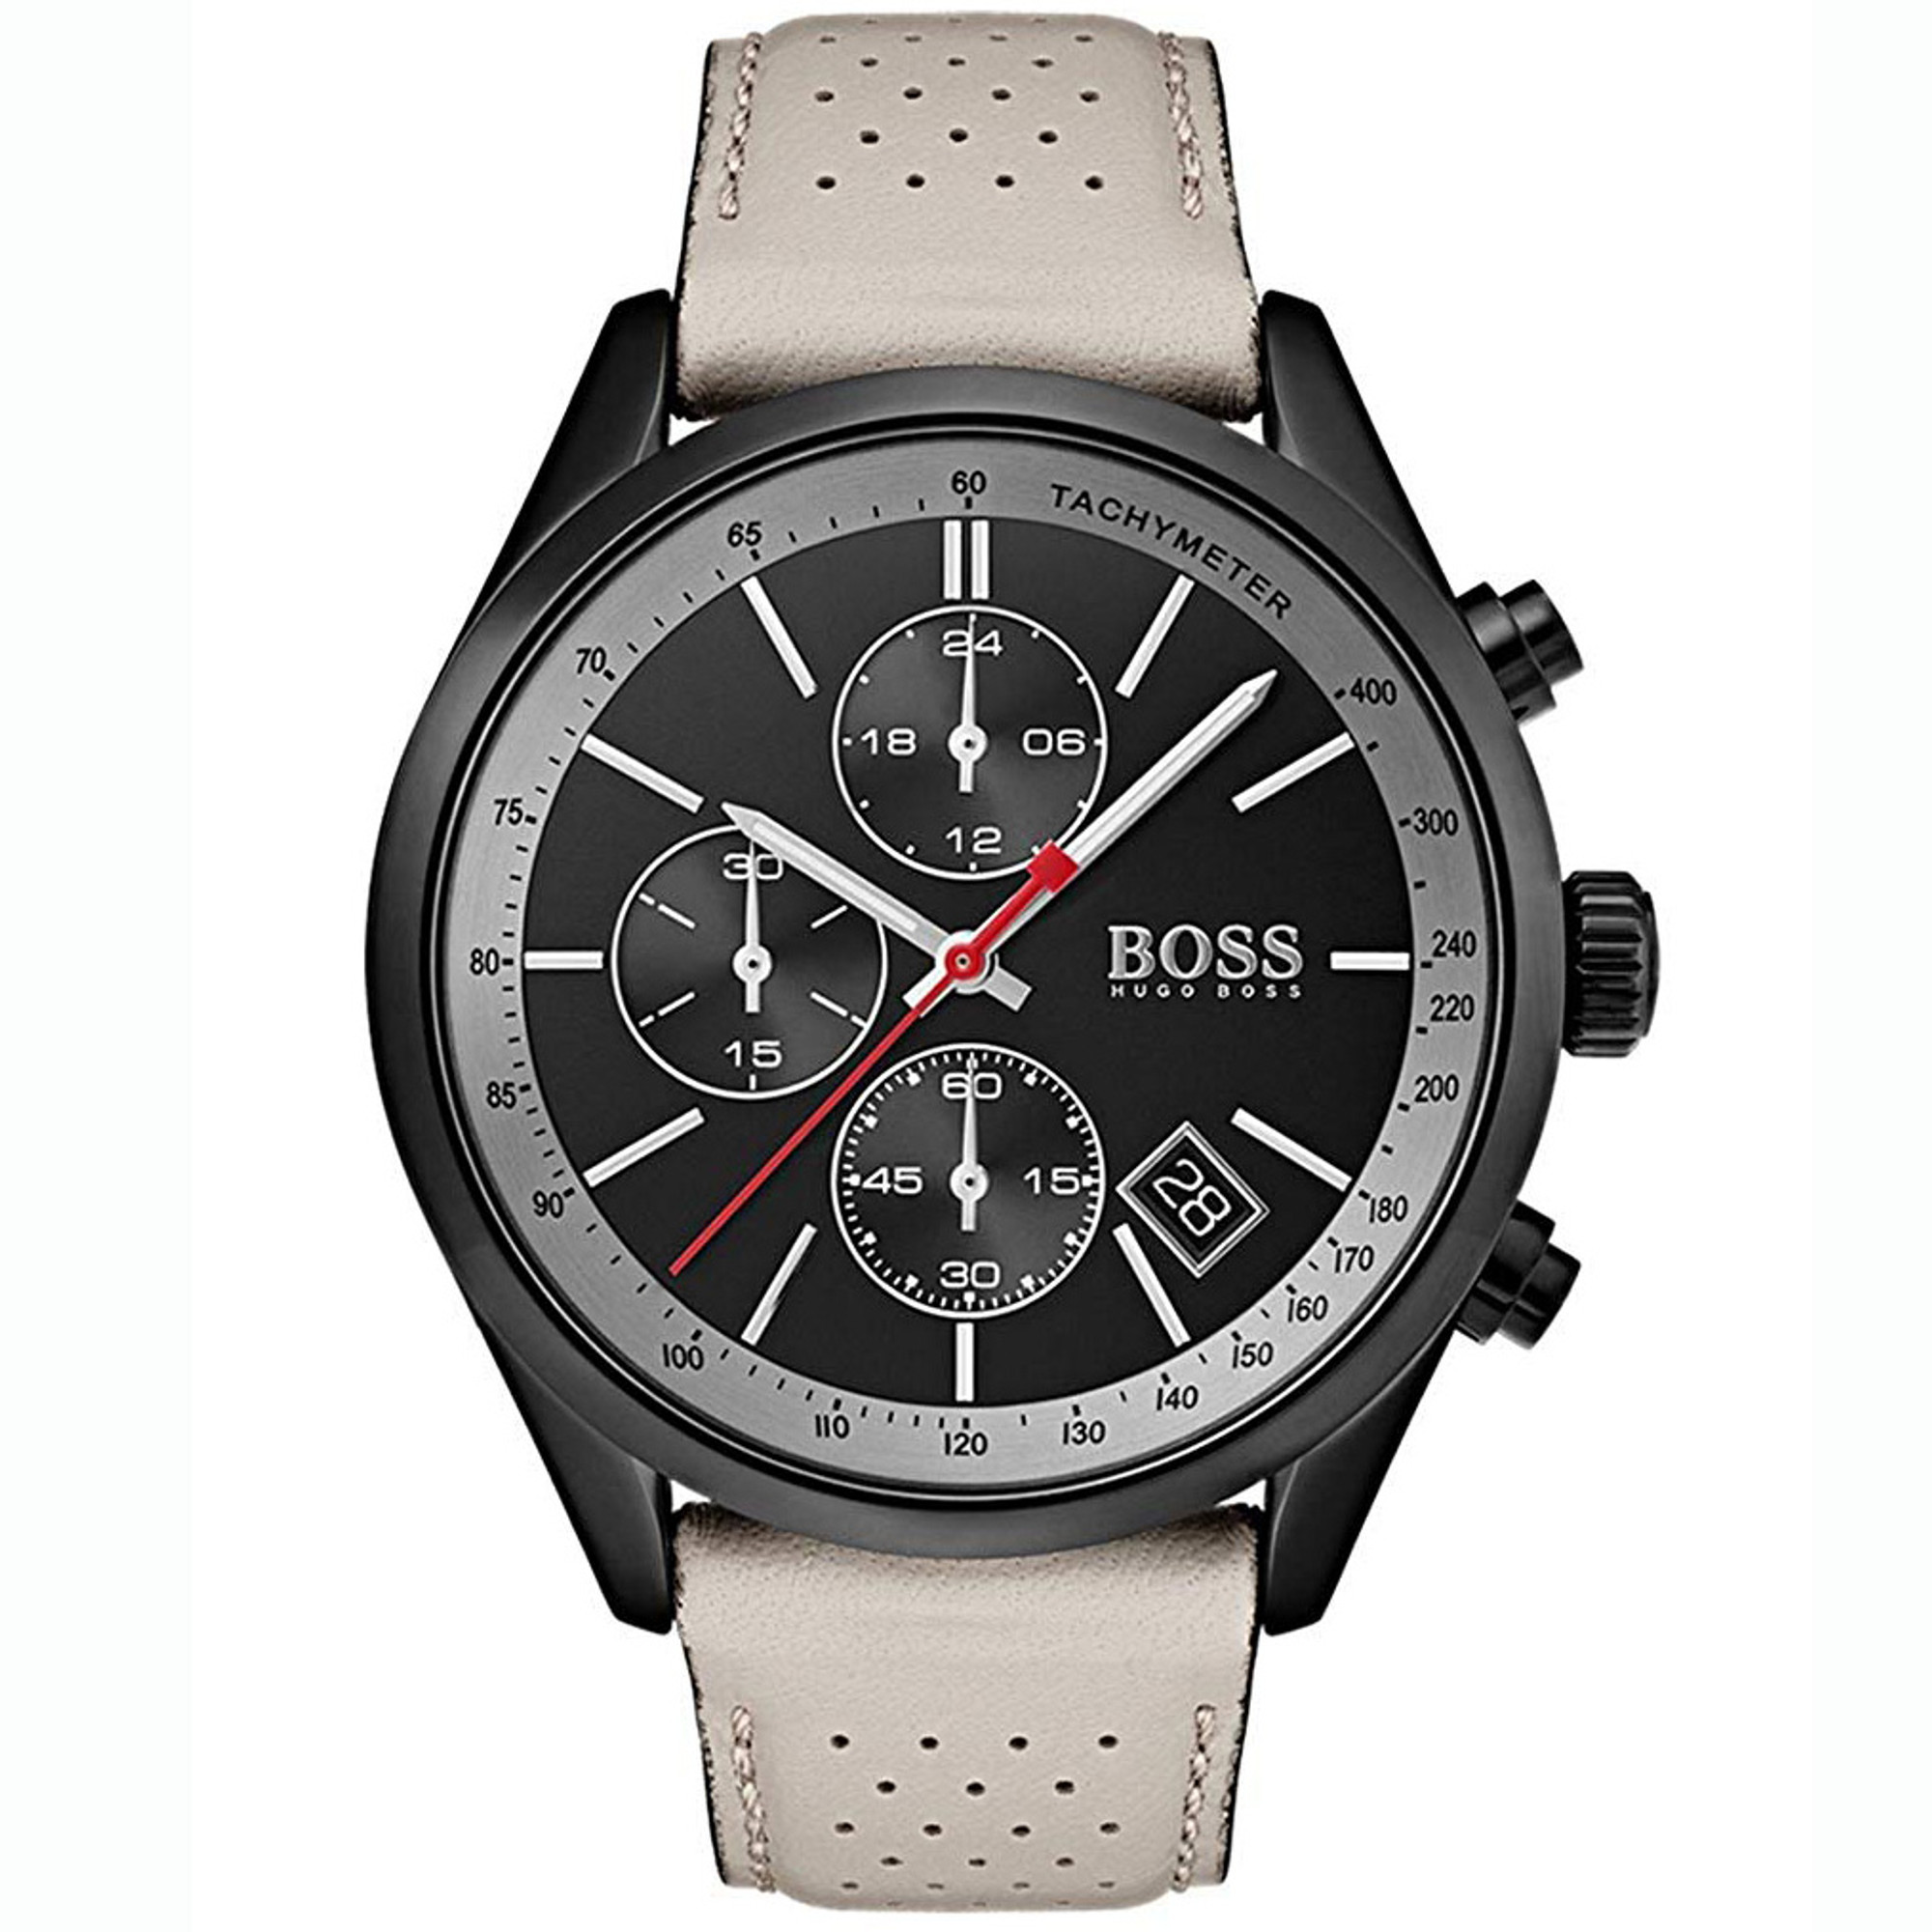 HUGO BOSS Grand Prix Quarz Chronograph 1513562